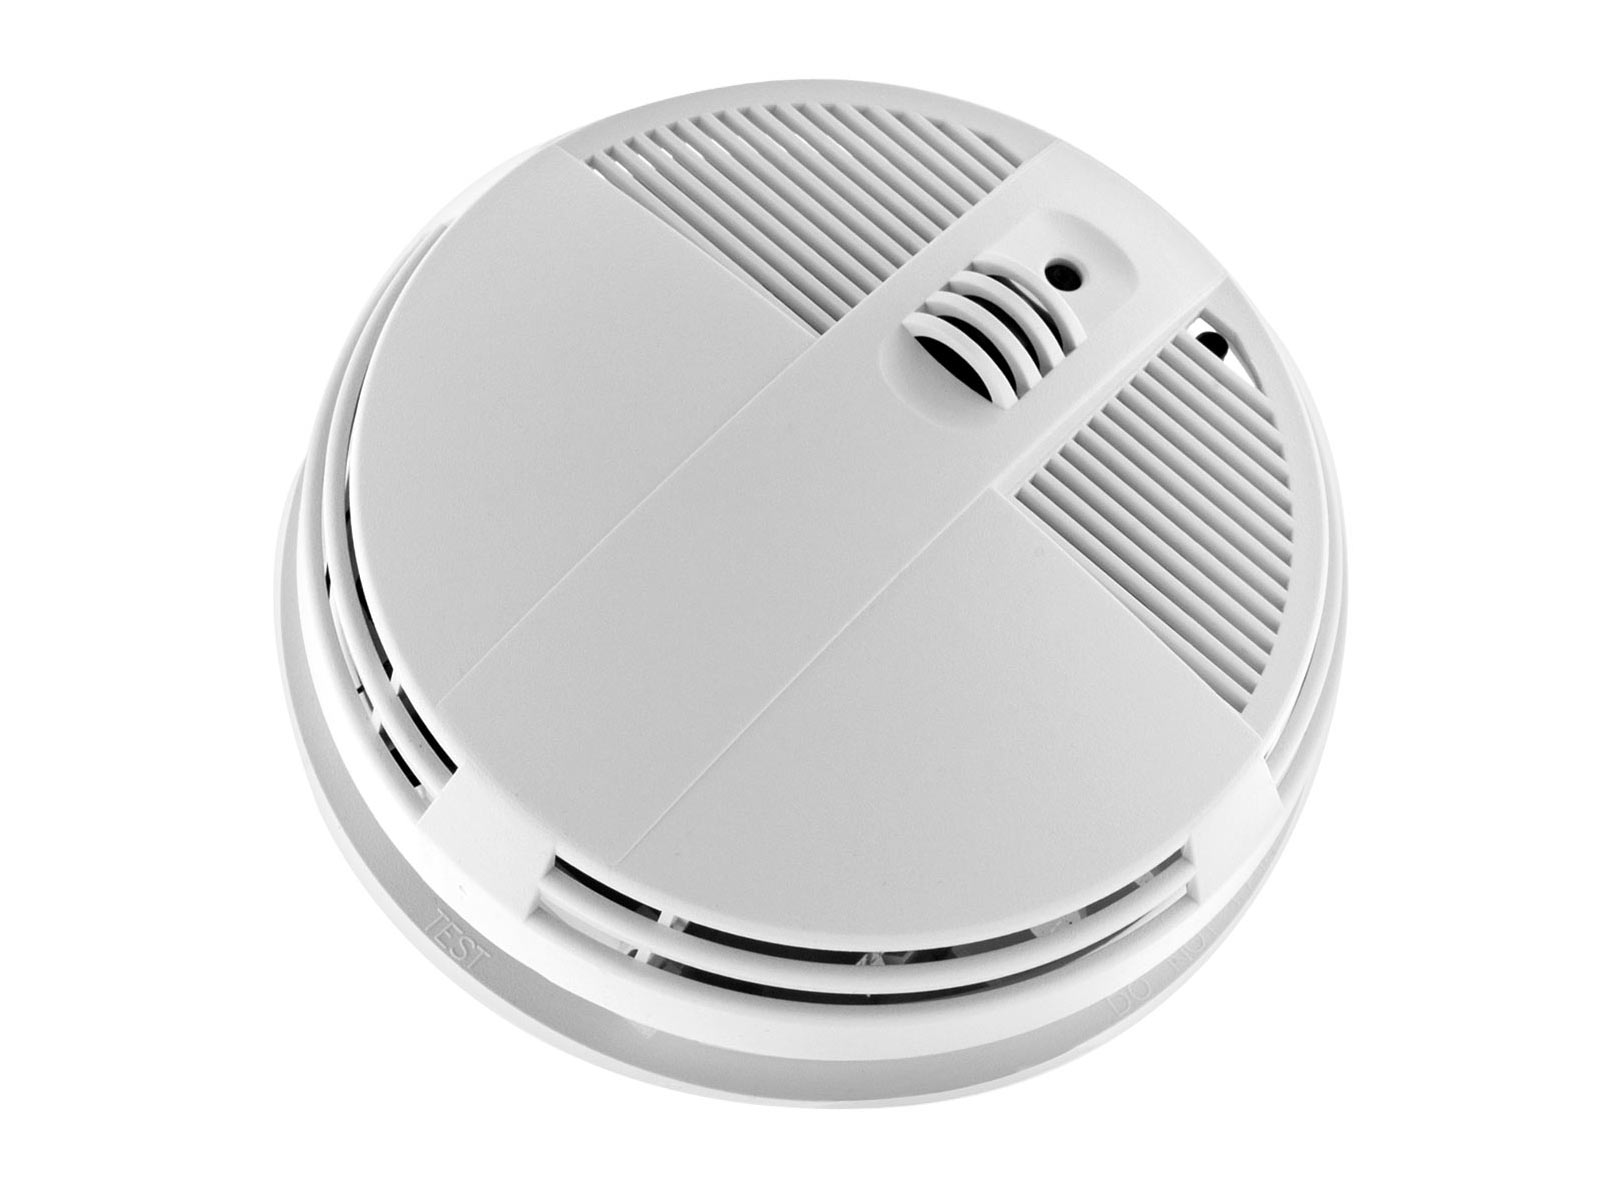 KJB Security Smoke Detector HD 720p Covert Camera DVR (Side View) by KJB Security